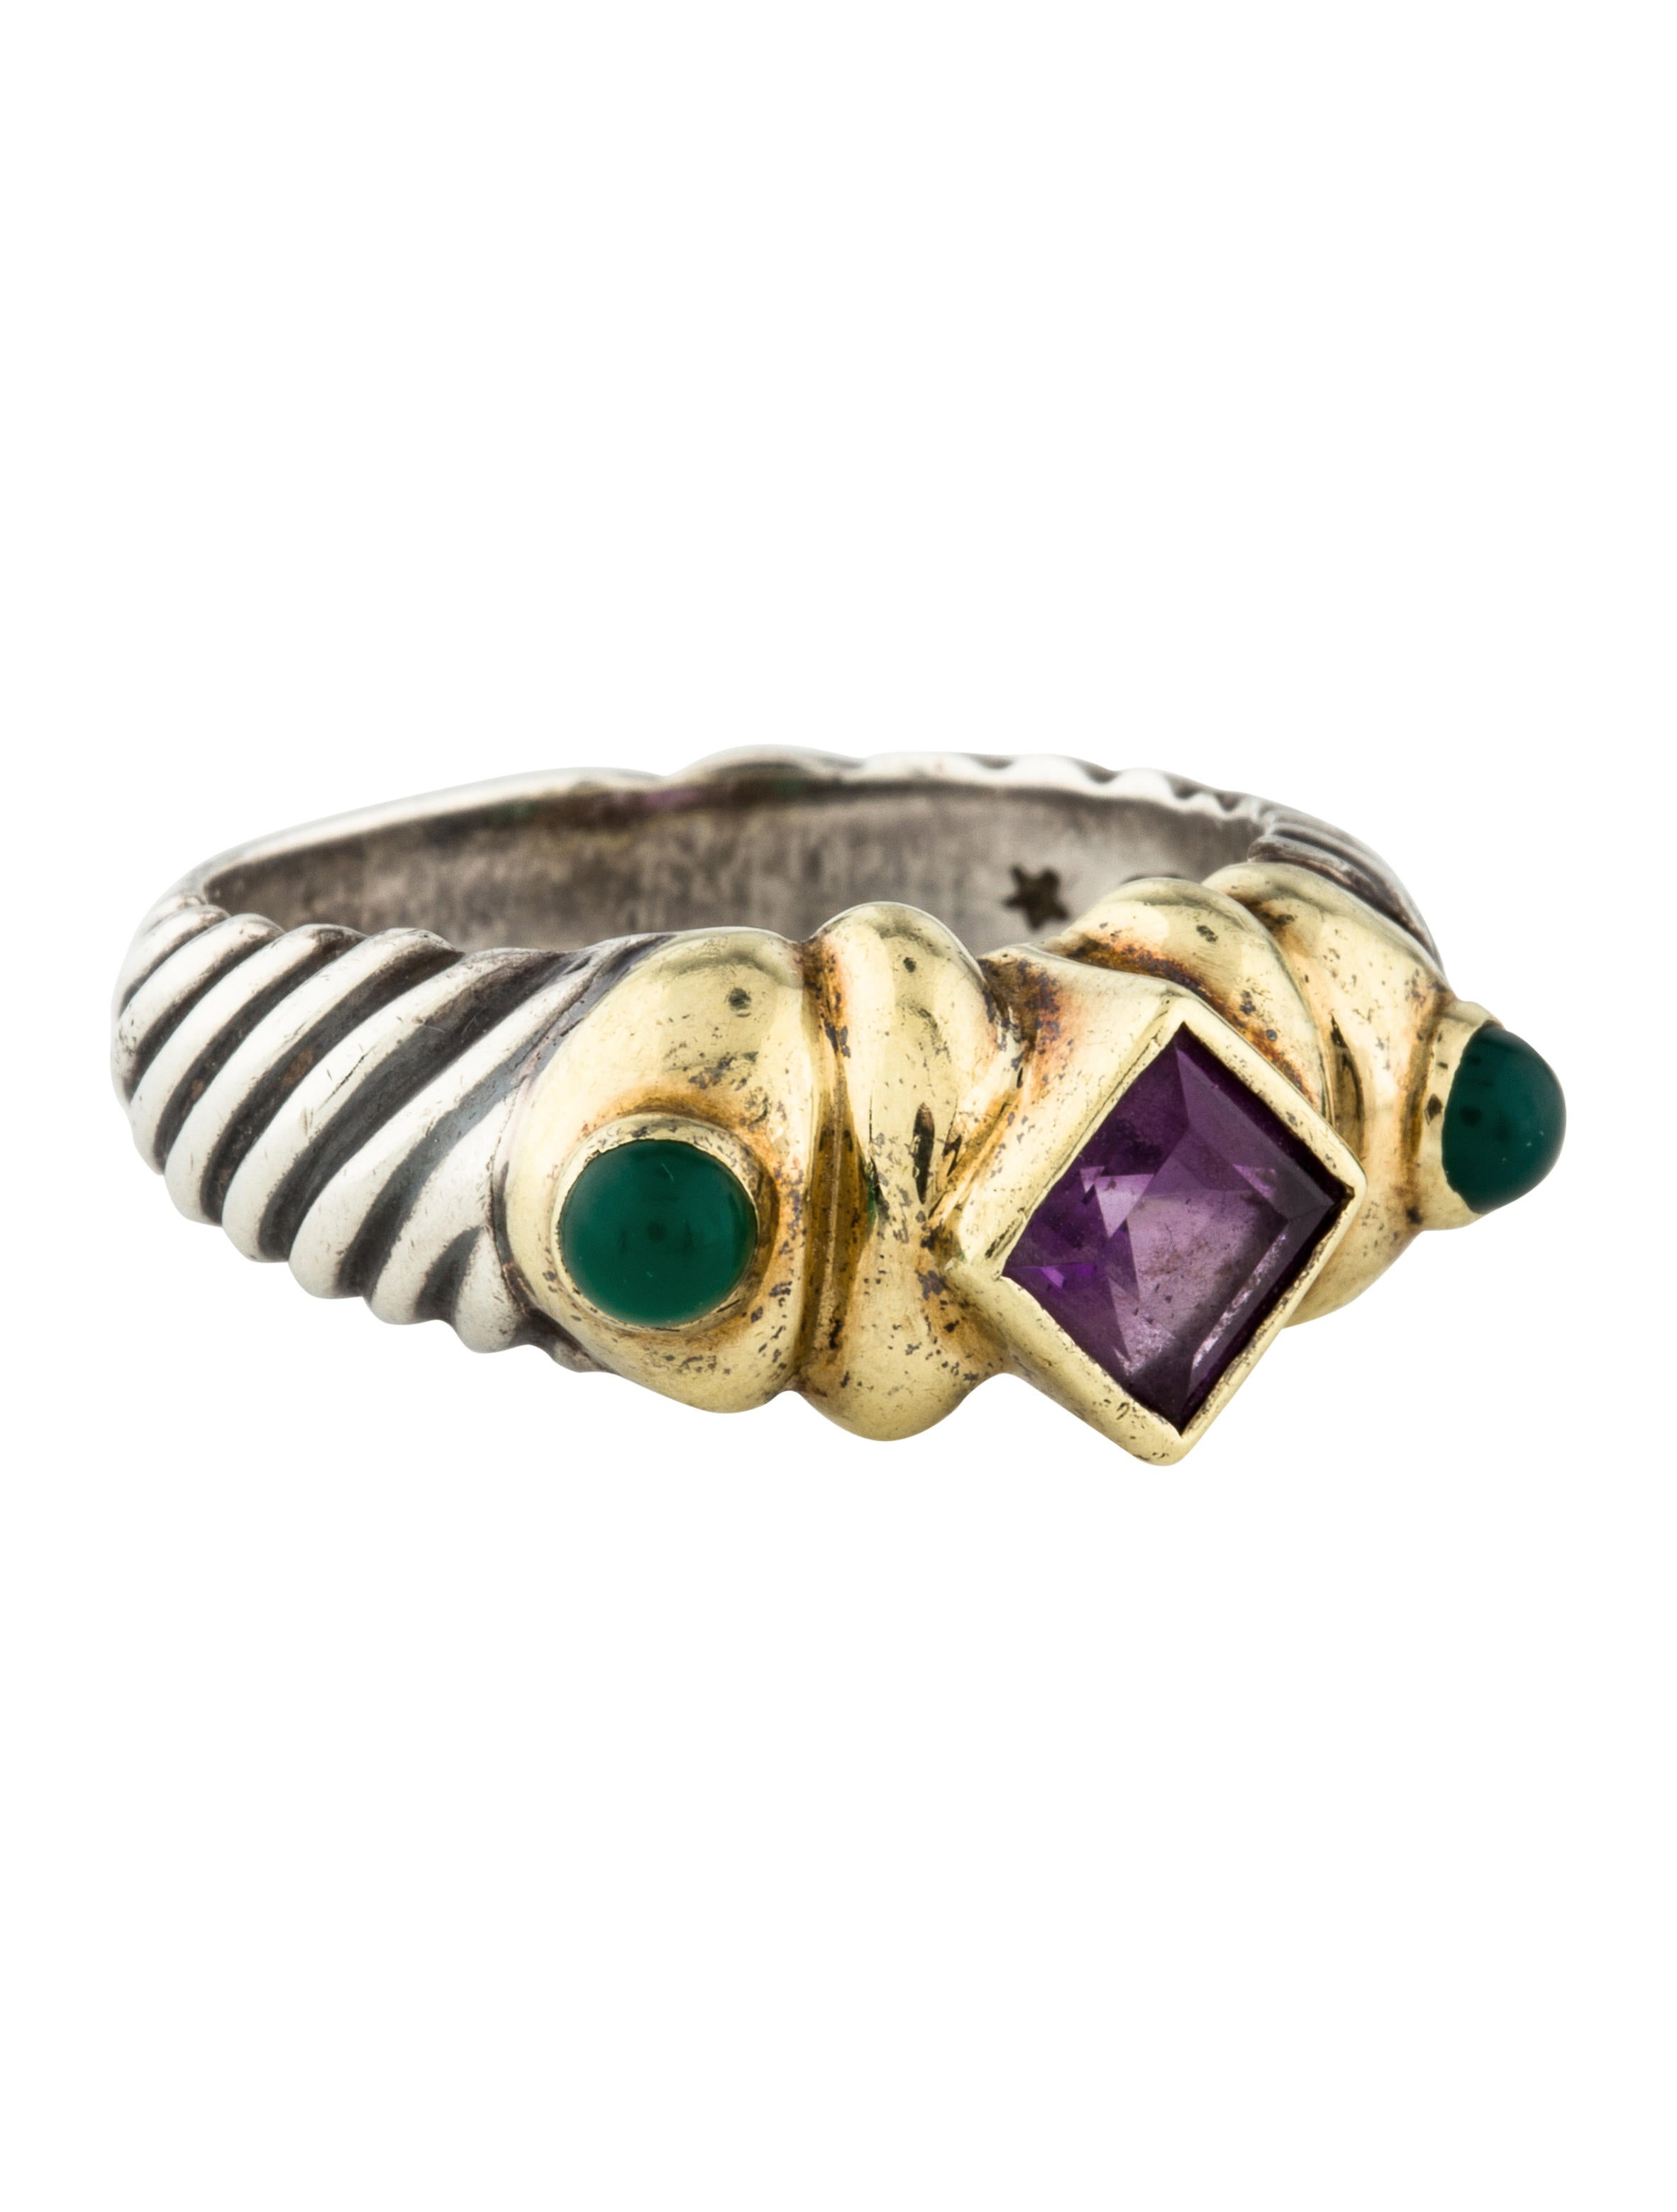 david emerald ring expand amethyst full item solid yurman size to renaissance click